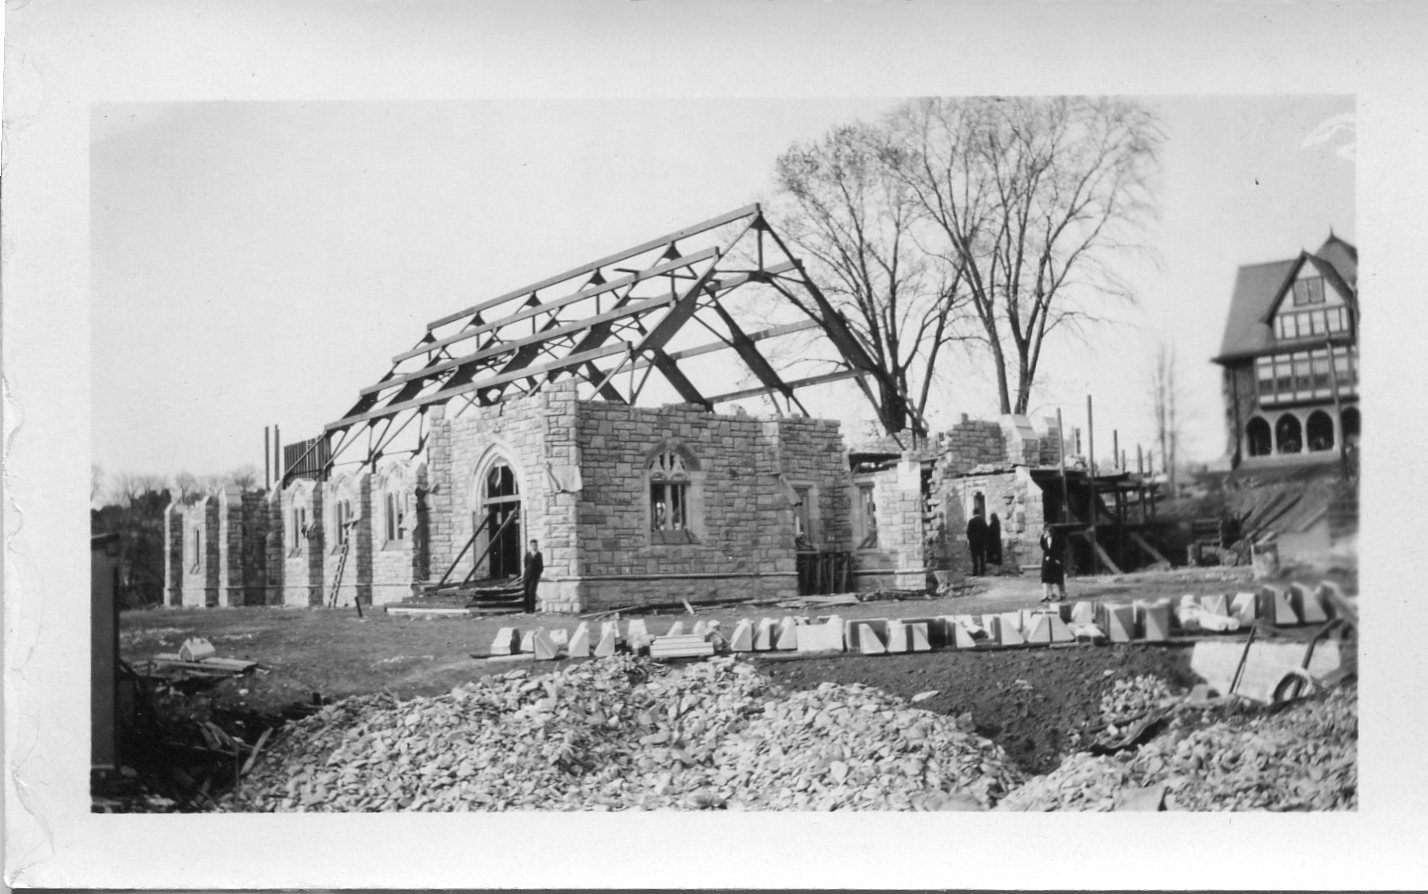 Graham Tyler Chapel under construction in 1931